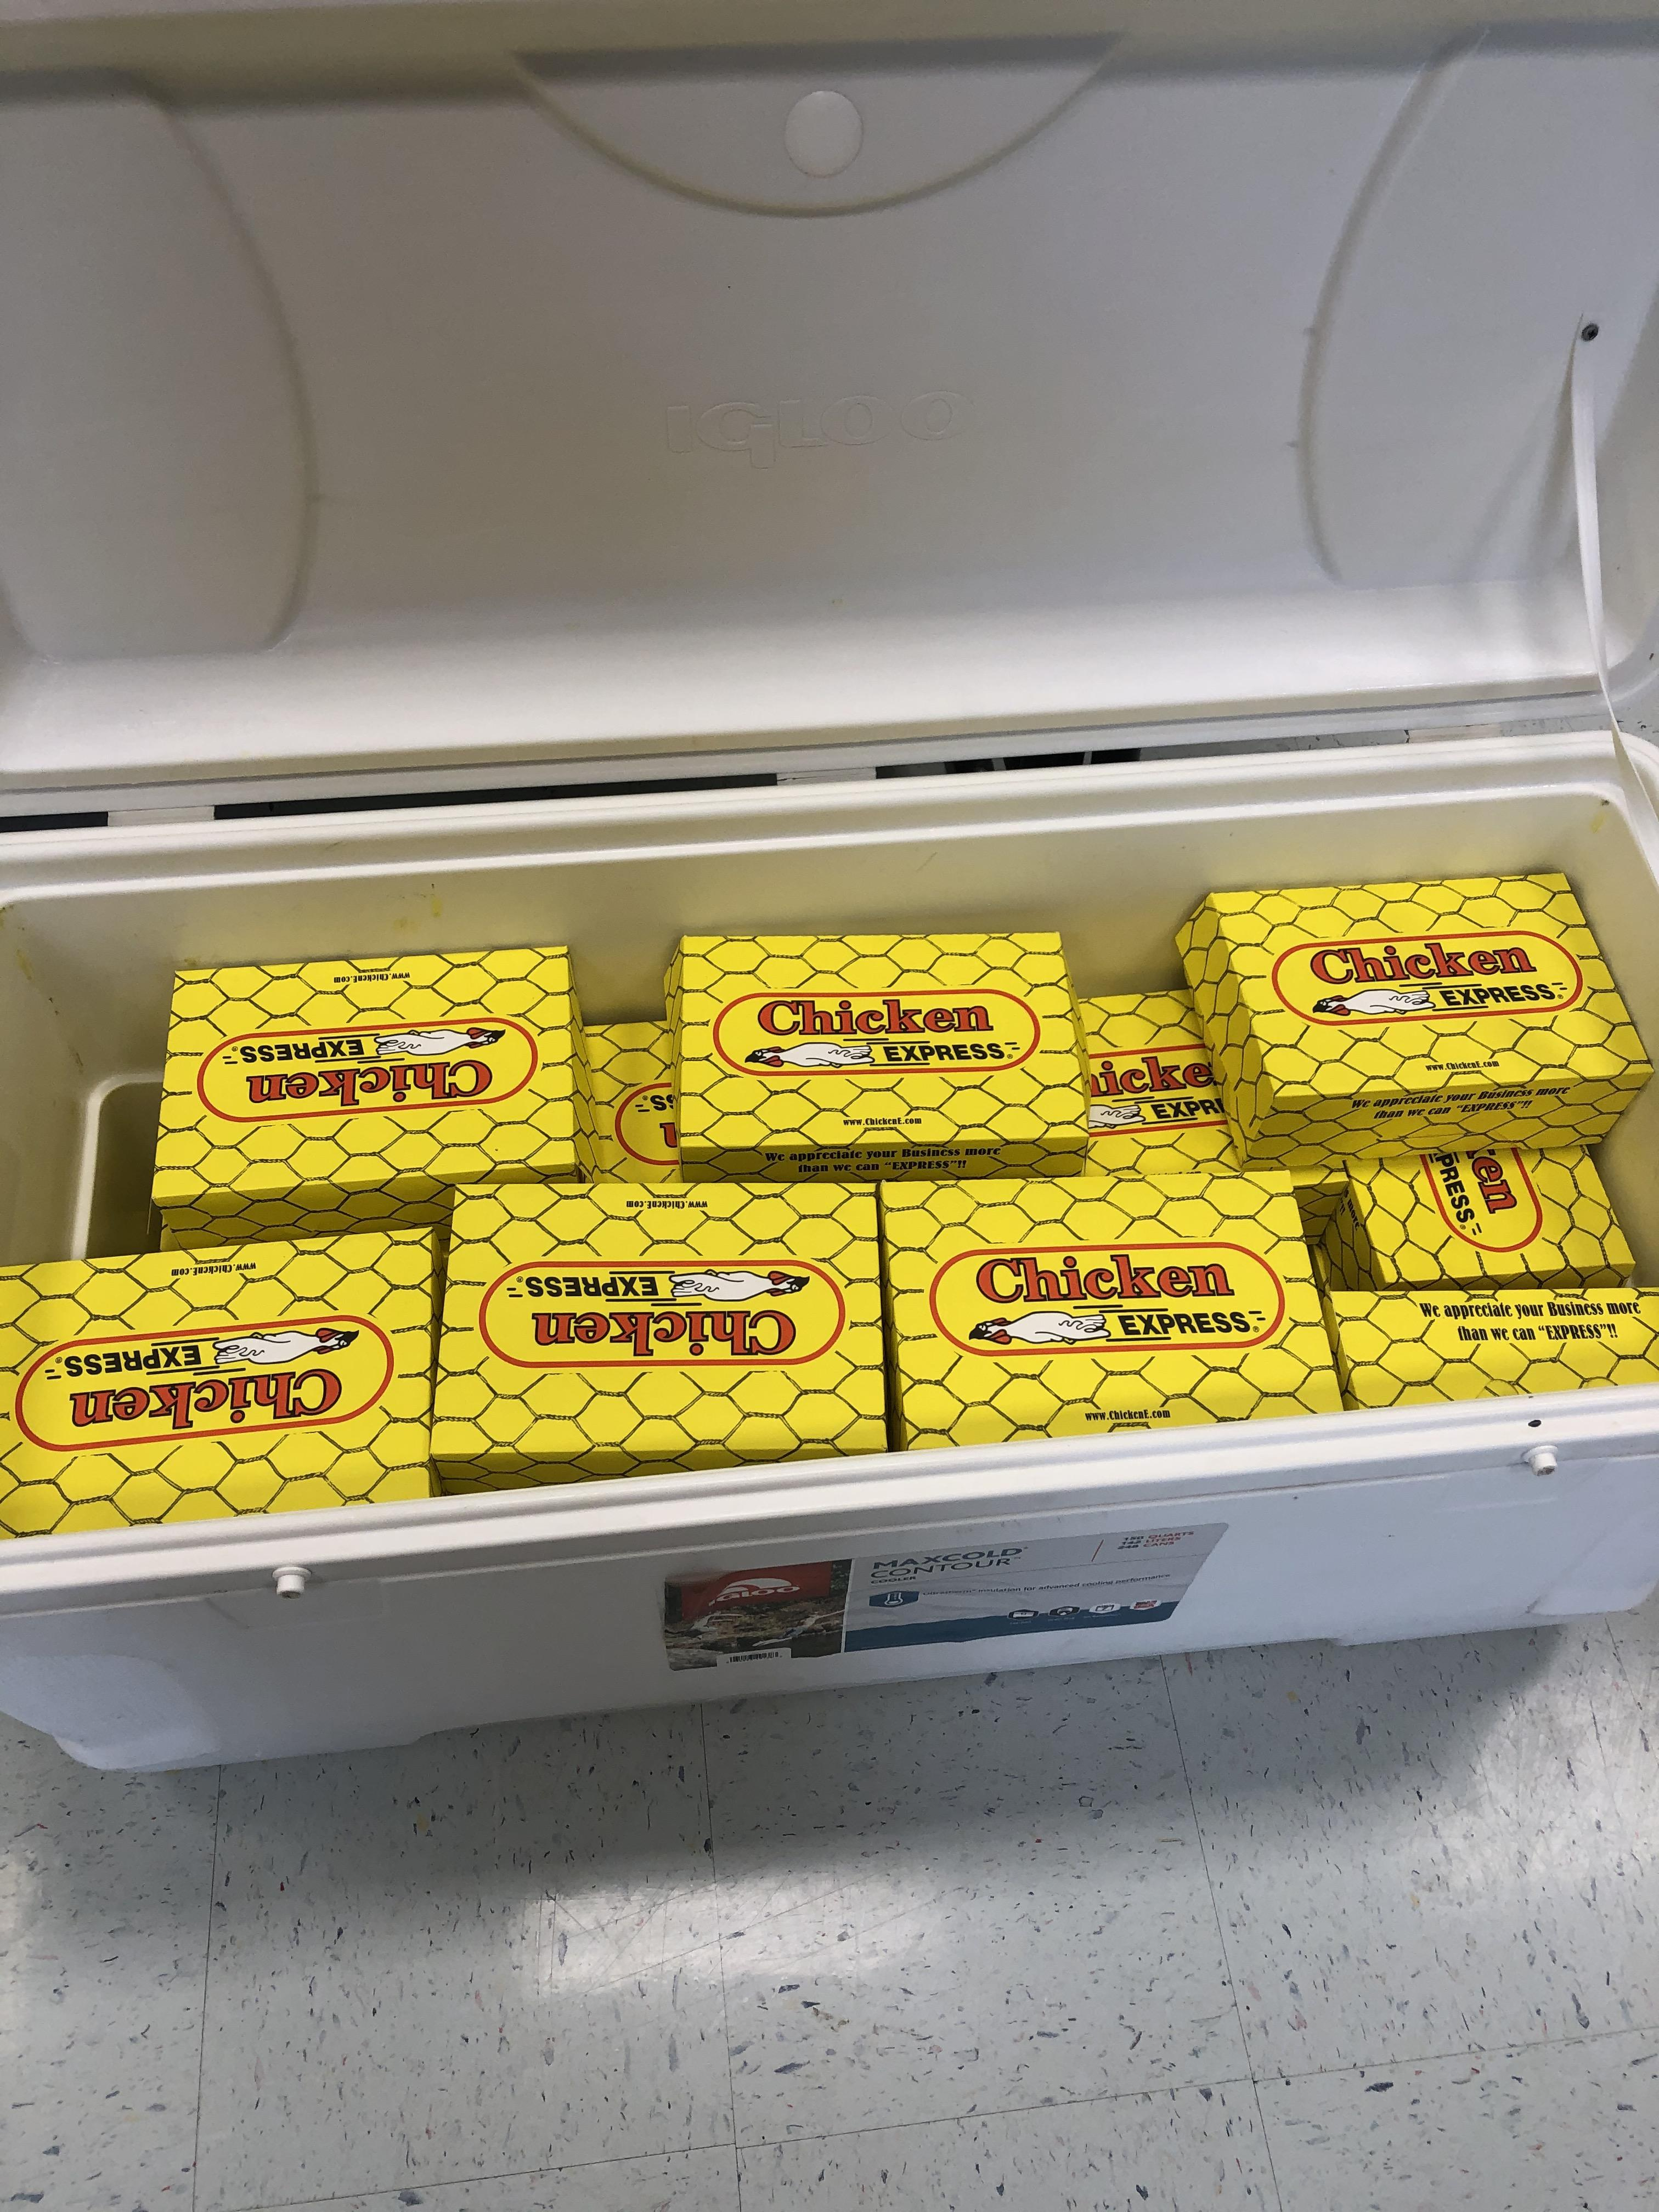 Cooler of meals from Chicken E